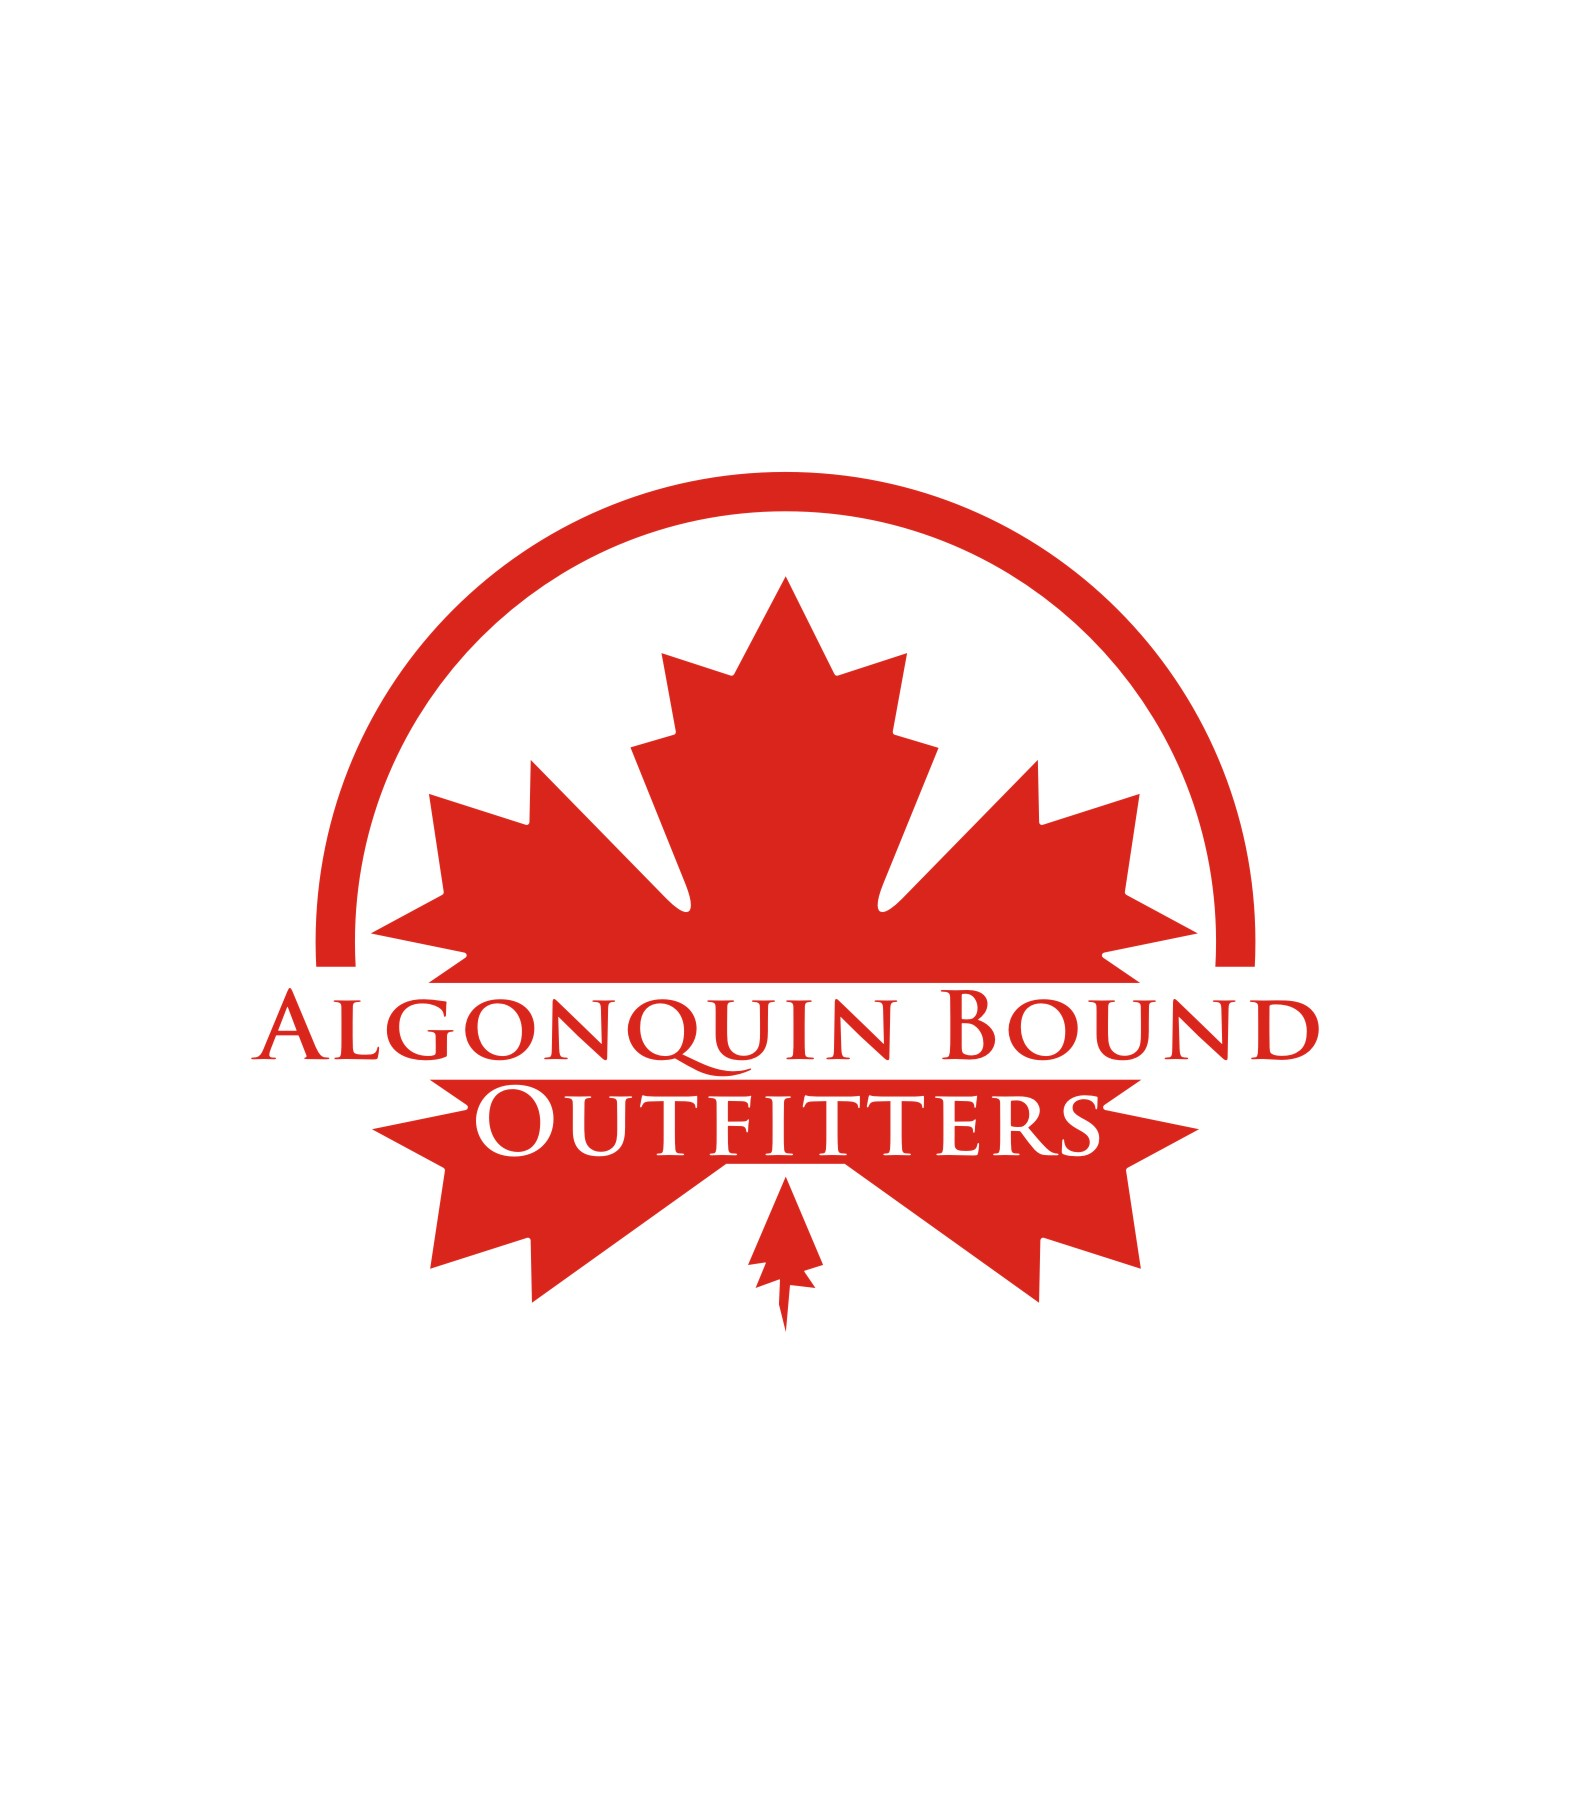 Logo Design by Private User - Entry No. 74 in the Logo Design Contest Captivating Logo Design for Algonquin Bound Outfitters.